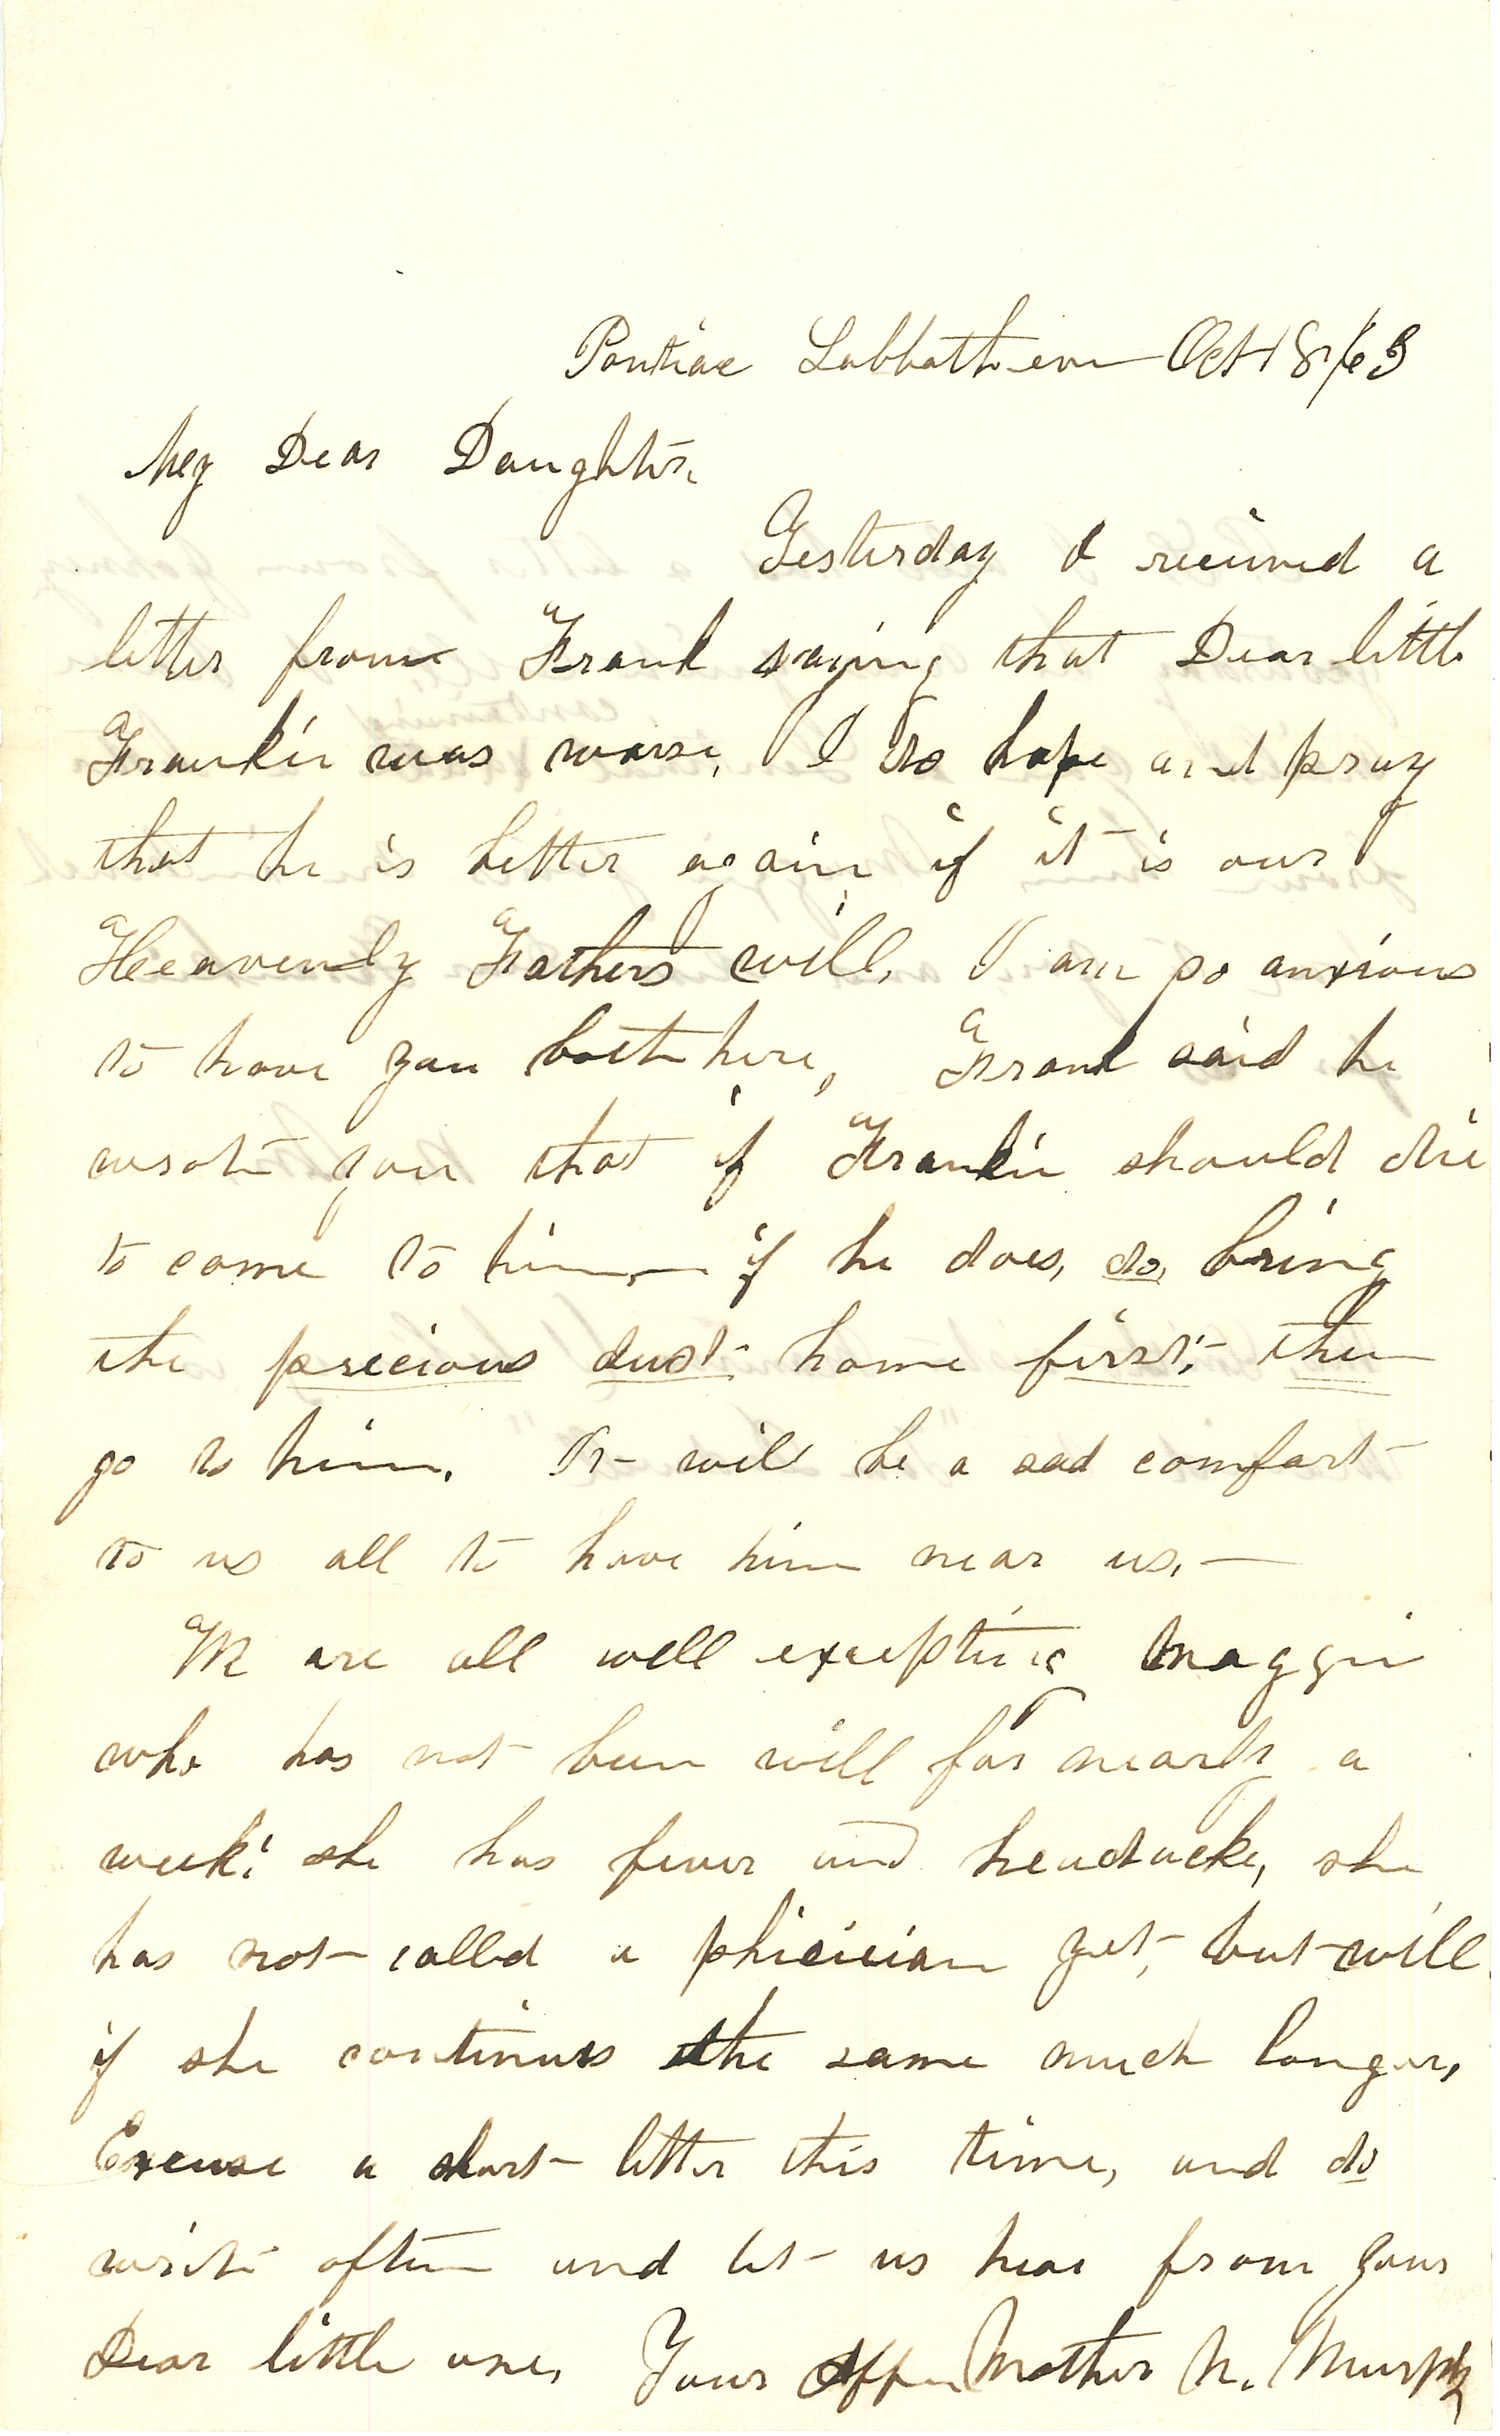 Joseph Culver Letter, October 8, 1863, Page 1